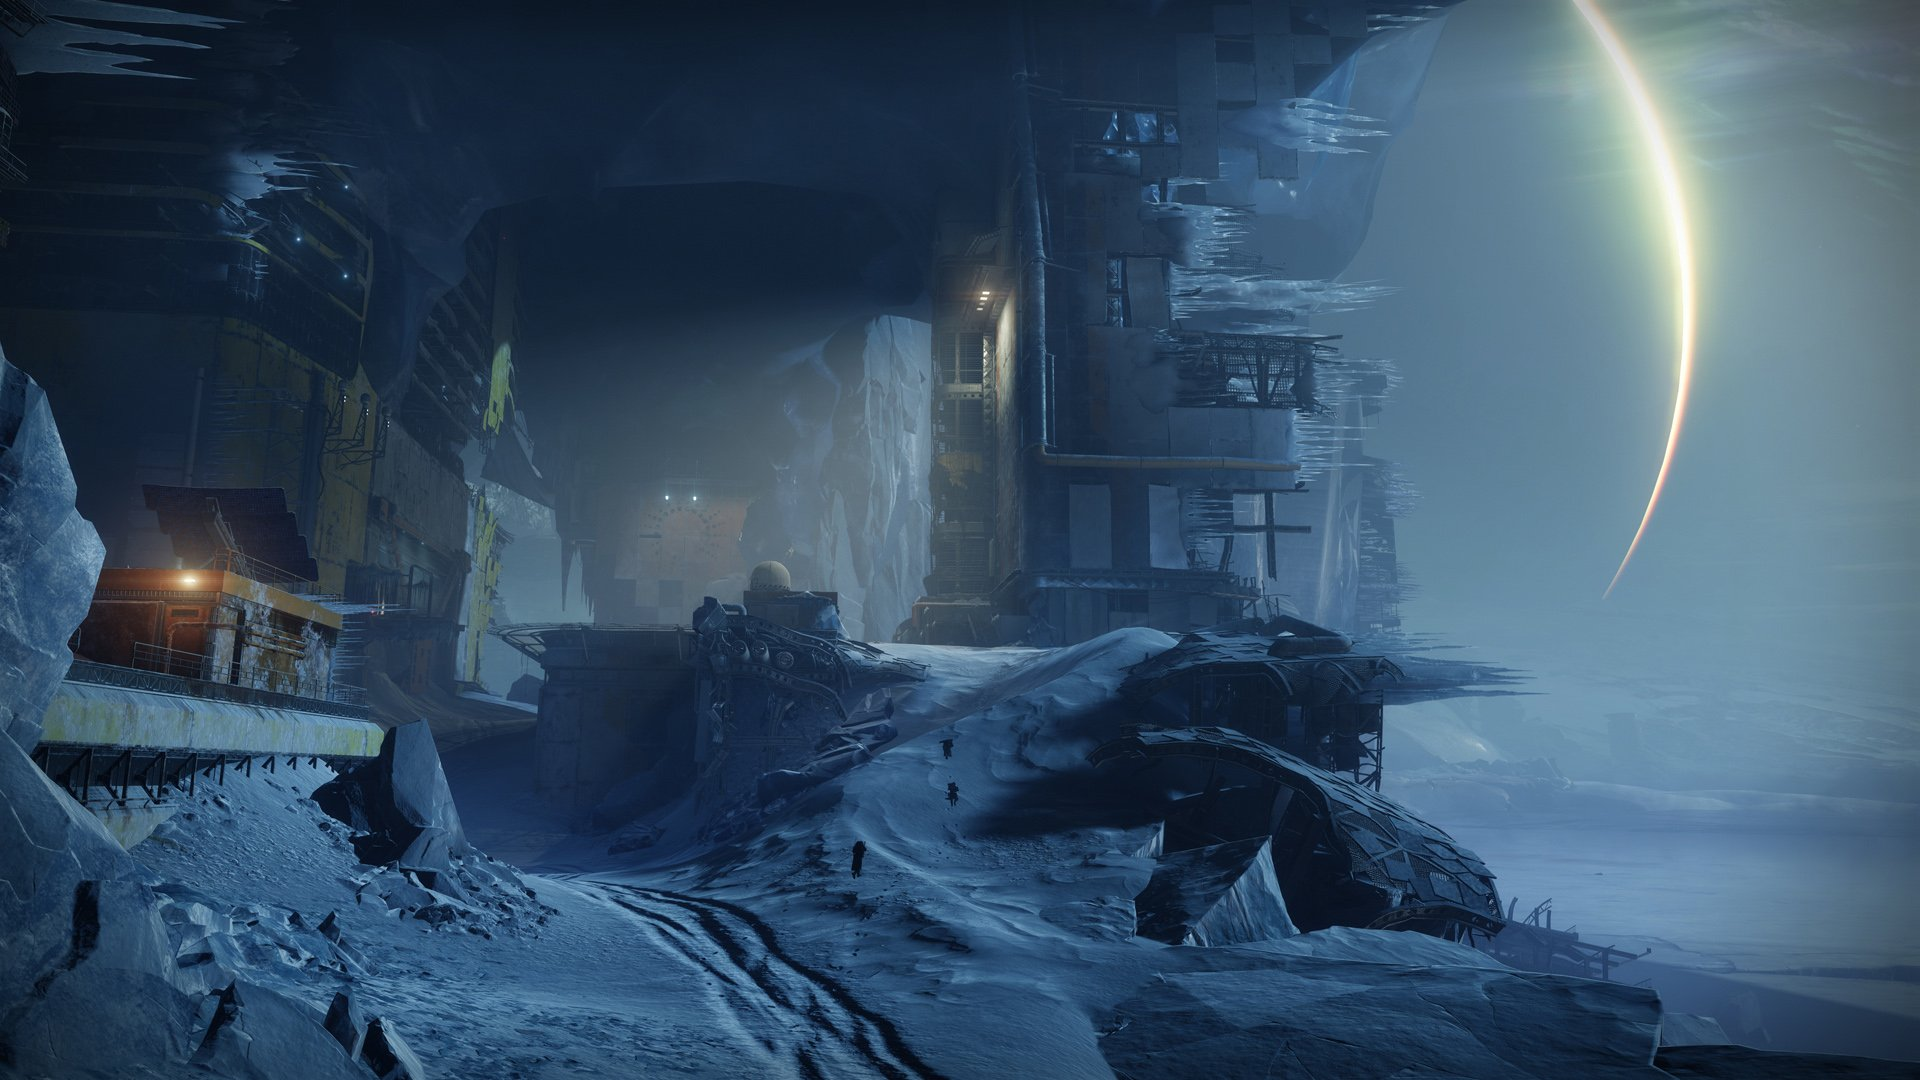 Destiny 2: Where to Find K1 Revelation Lost Sector